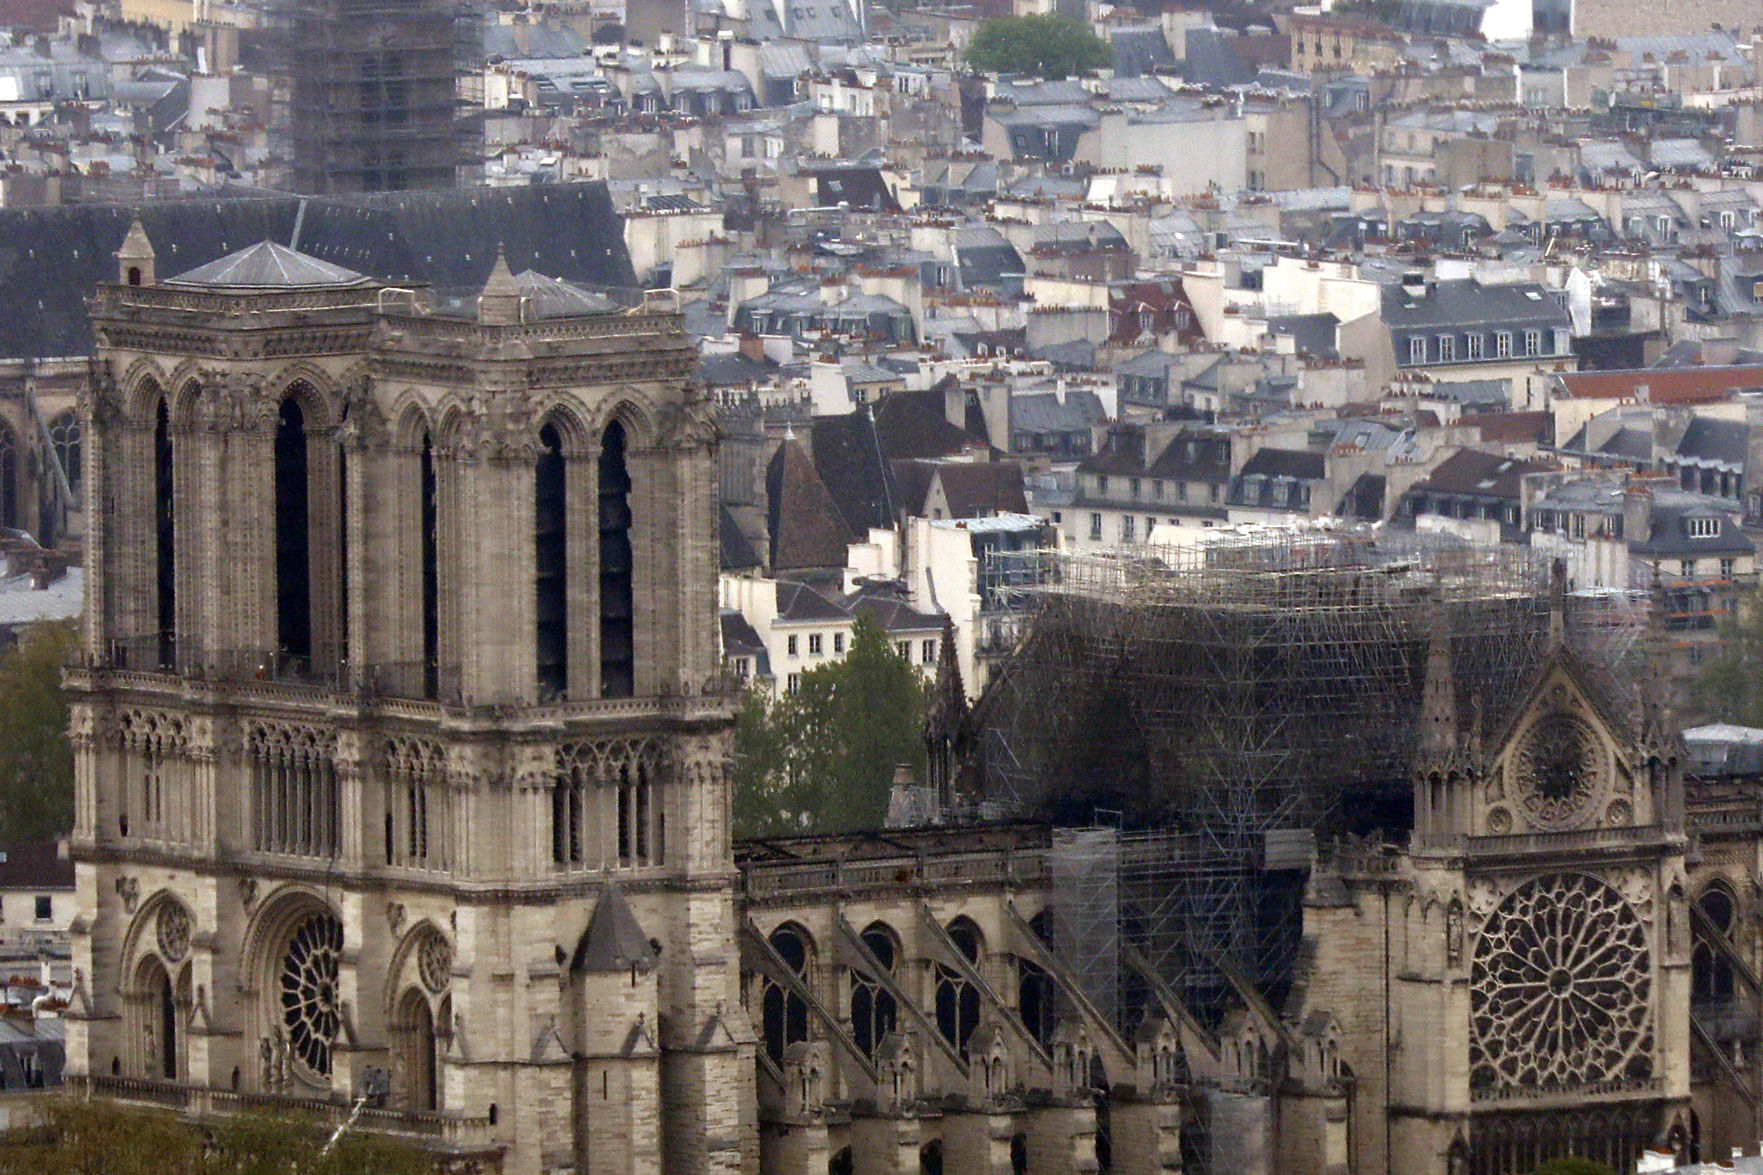 Notre Dame will close for 5-6 years after massive fire, cathedral's rector tells leaders